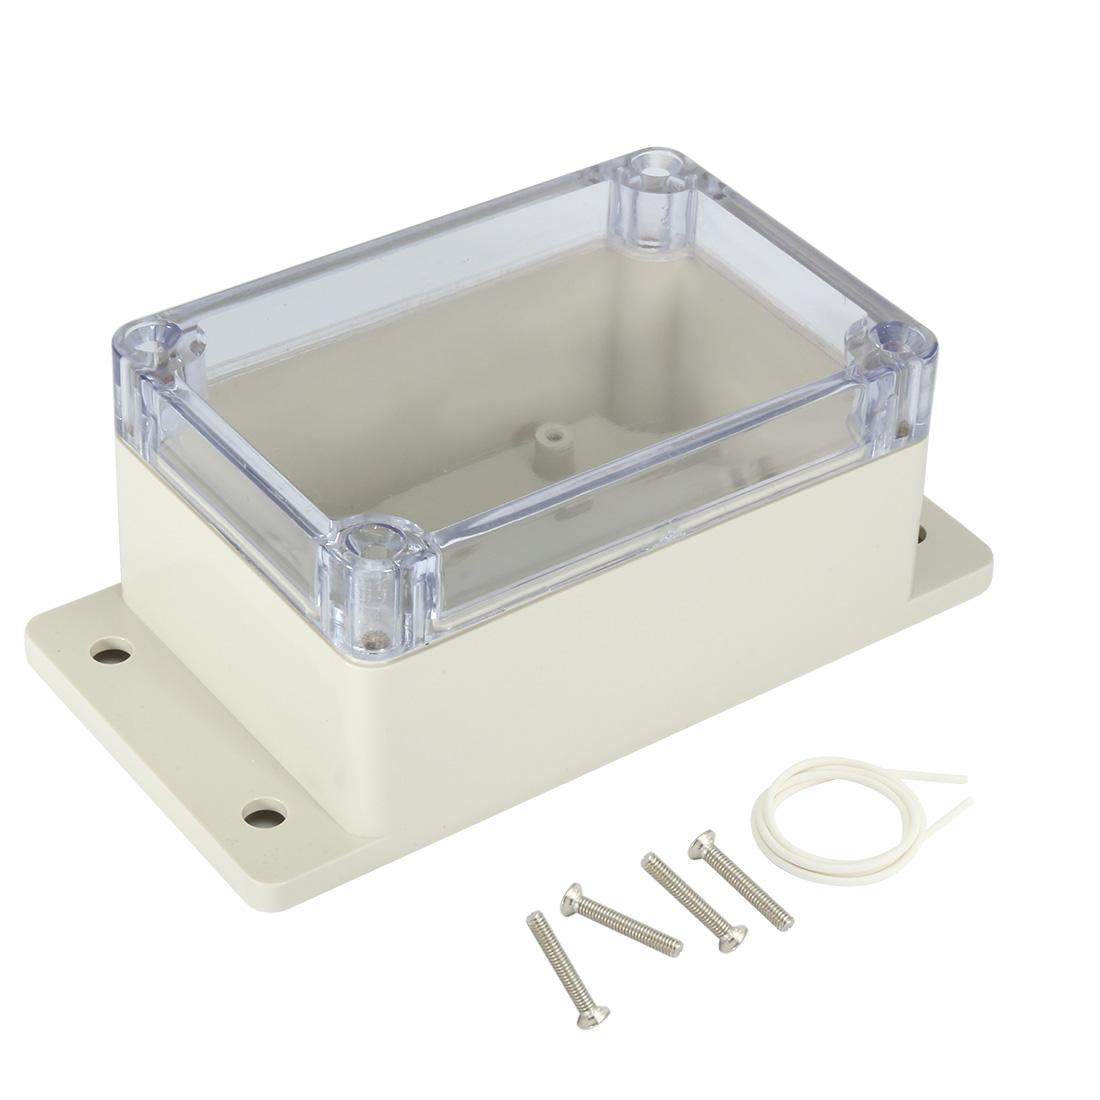 "3.9""x2.7""x2""(100mmx68mmx50mm) ABS Junction Box Universal Project Enclosure w PC Transparent Cover"